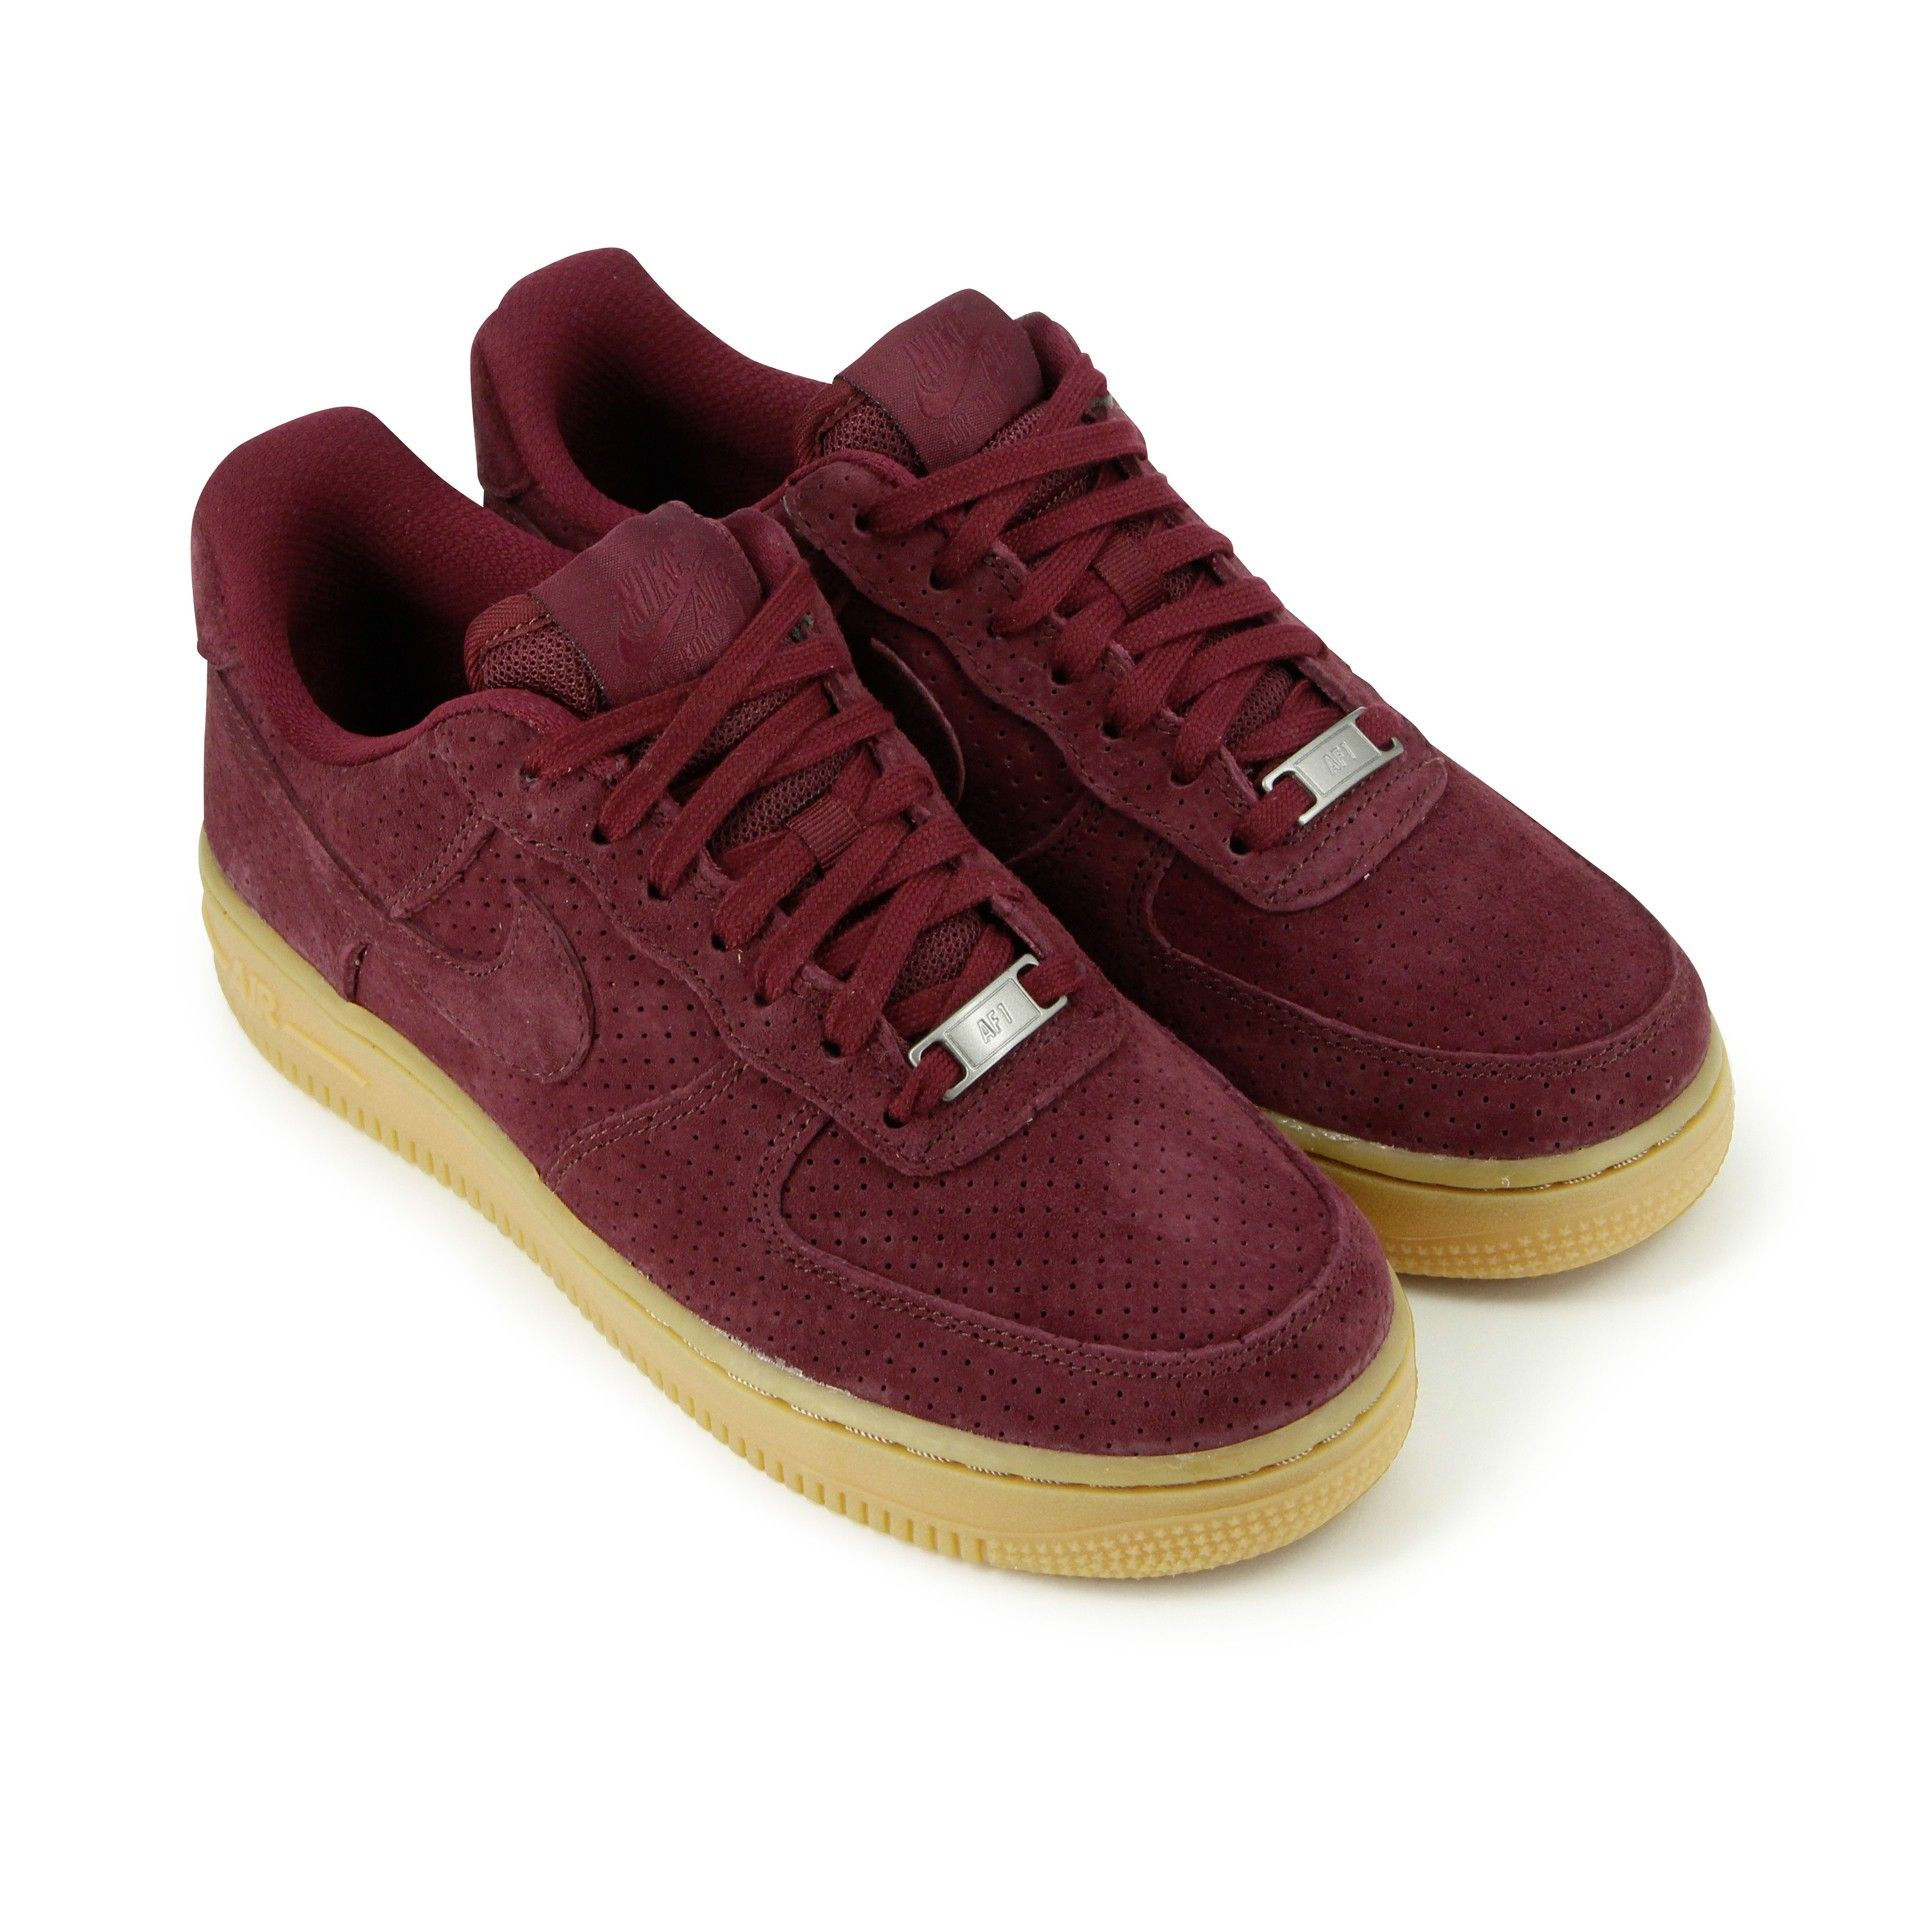 nike air force 1 bordeaux